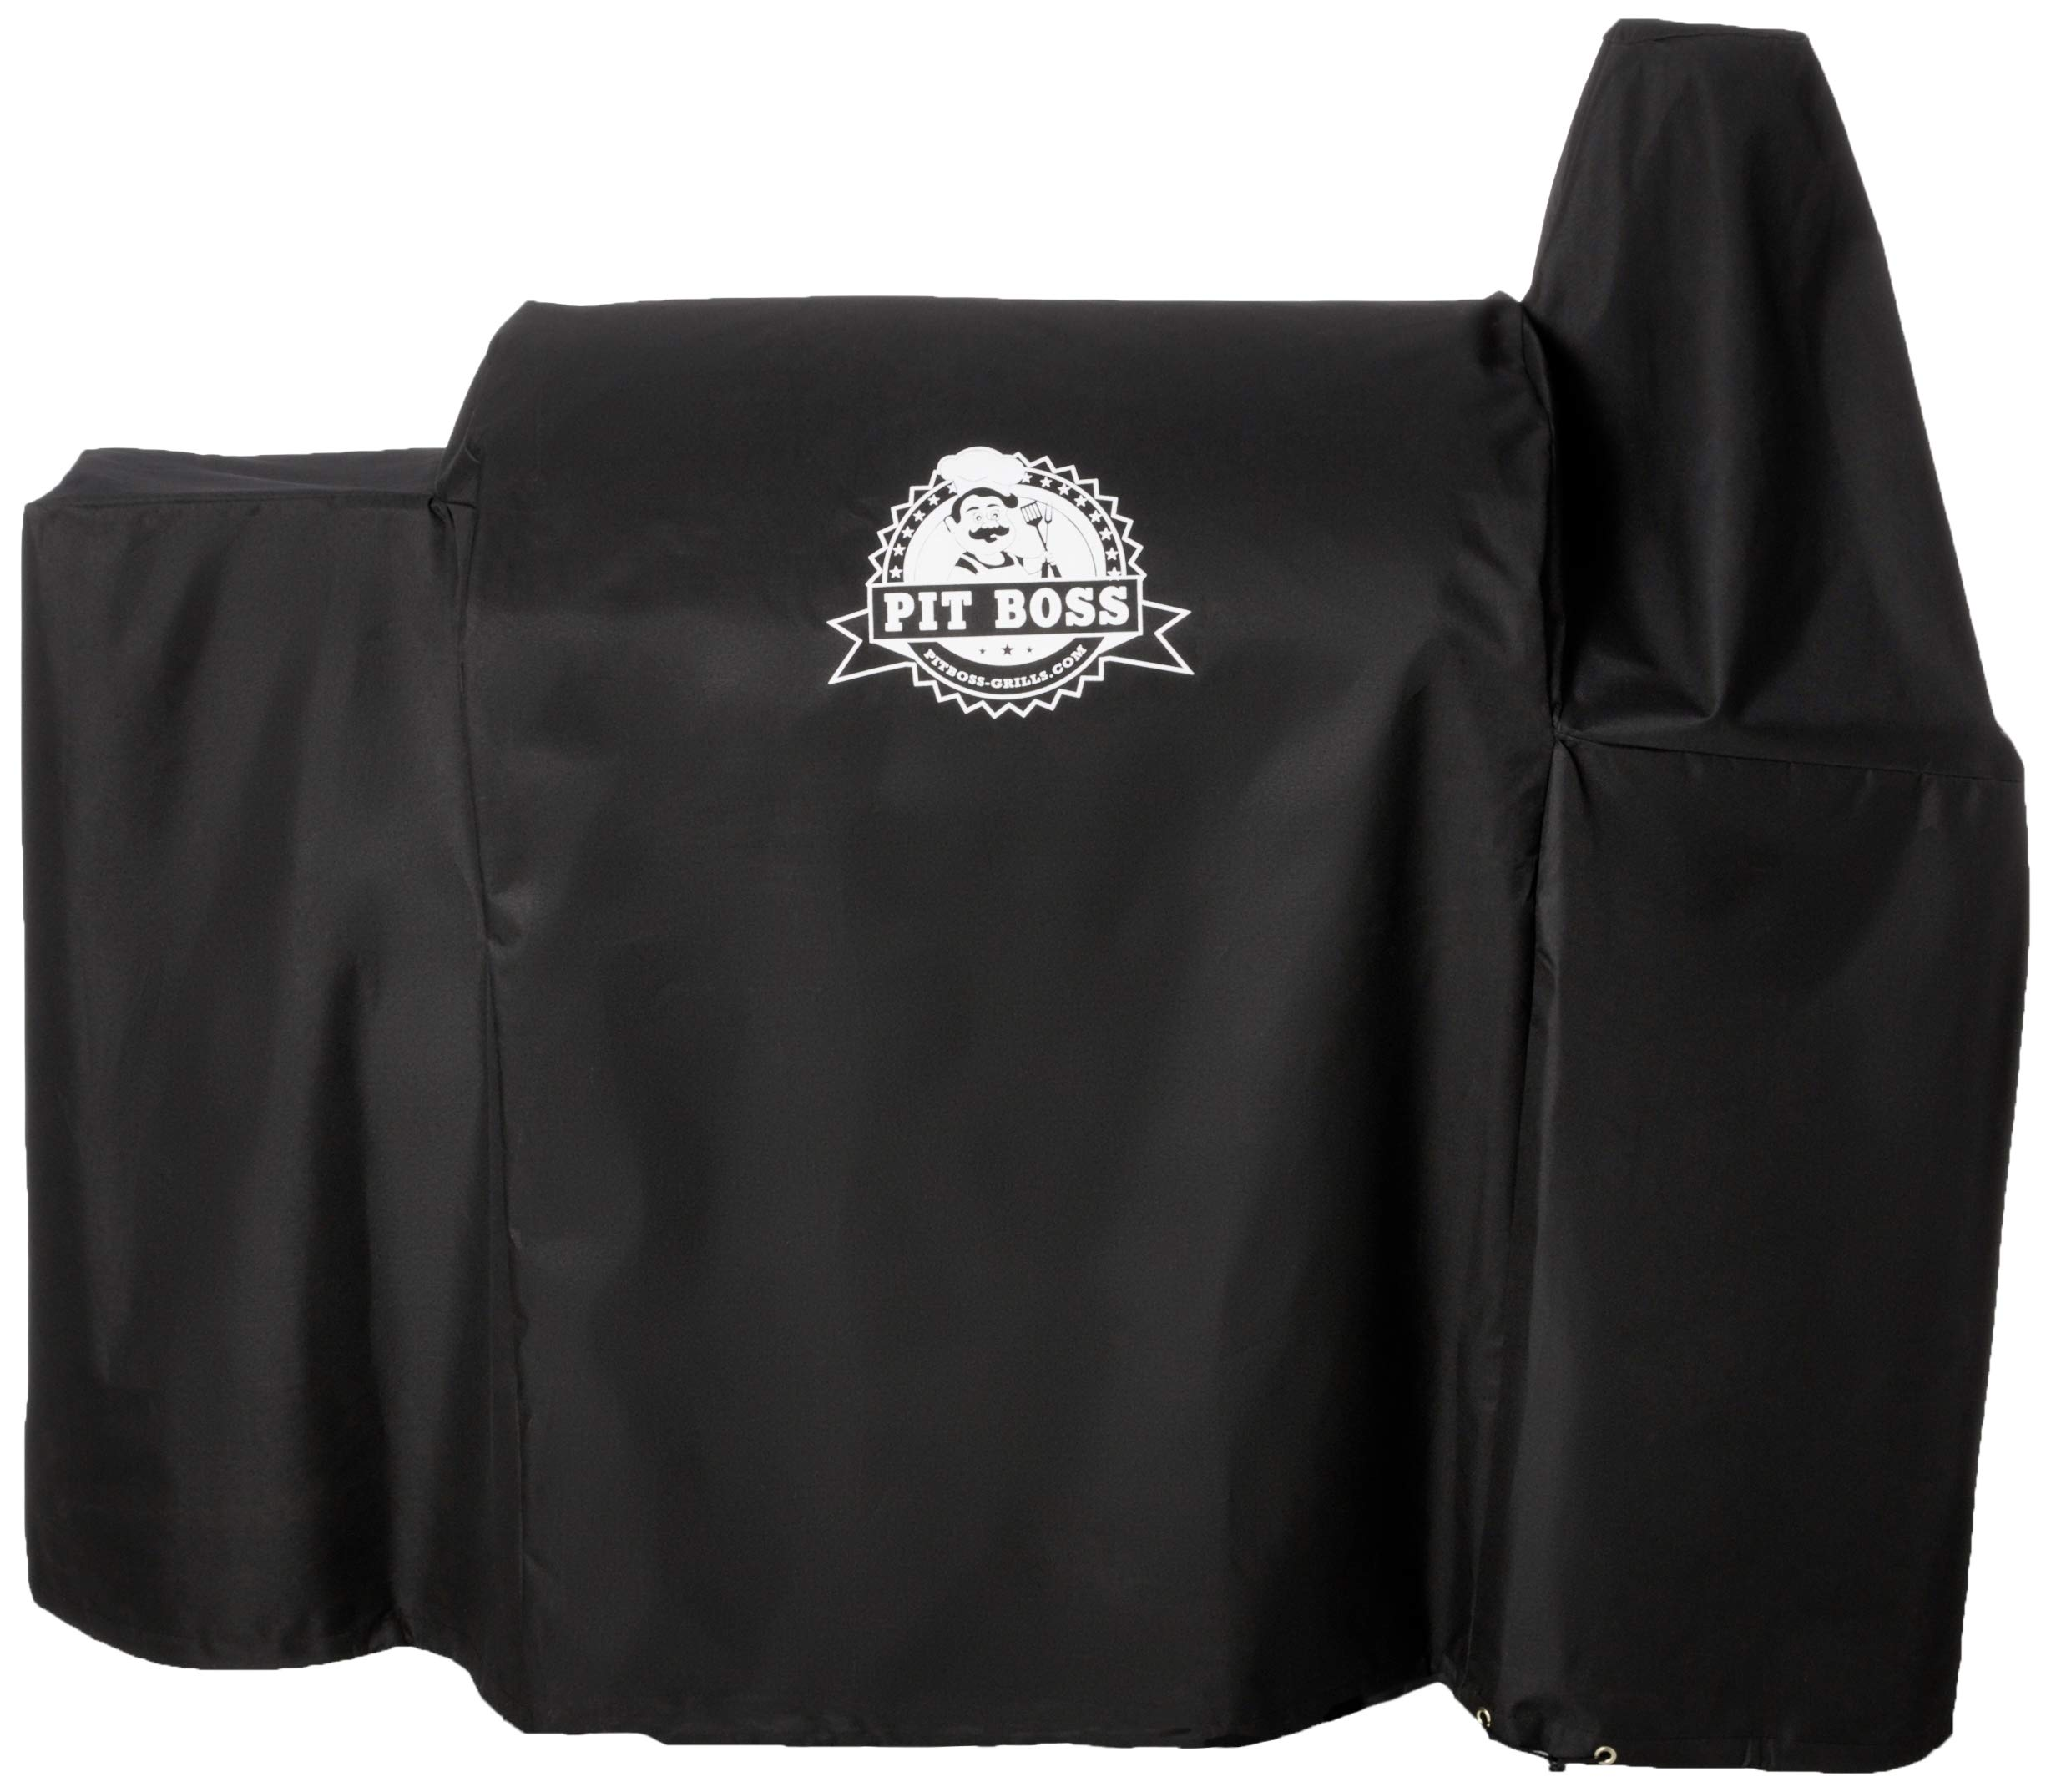 Pit Boss Grills 820 Deluxe Grill Cover by Pit Boss Grills (Image #3)